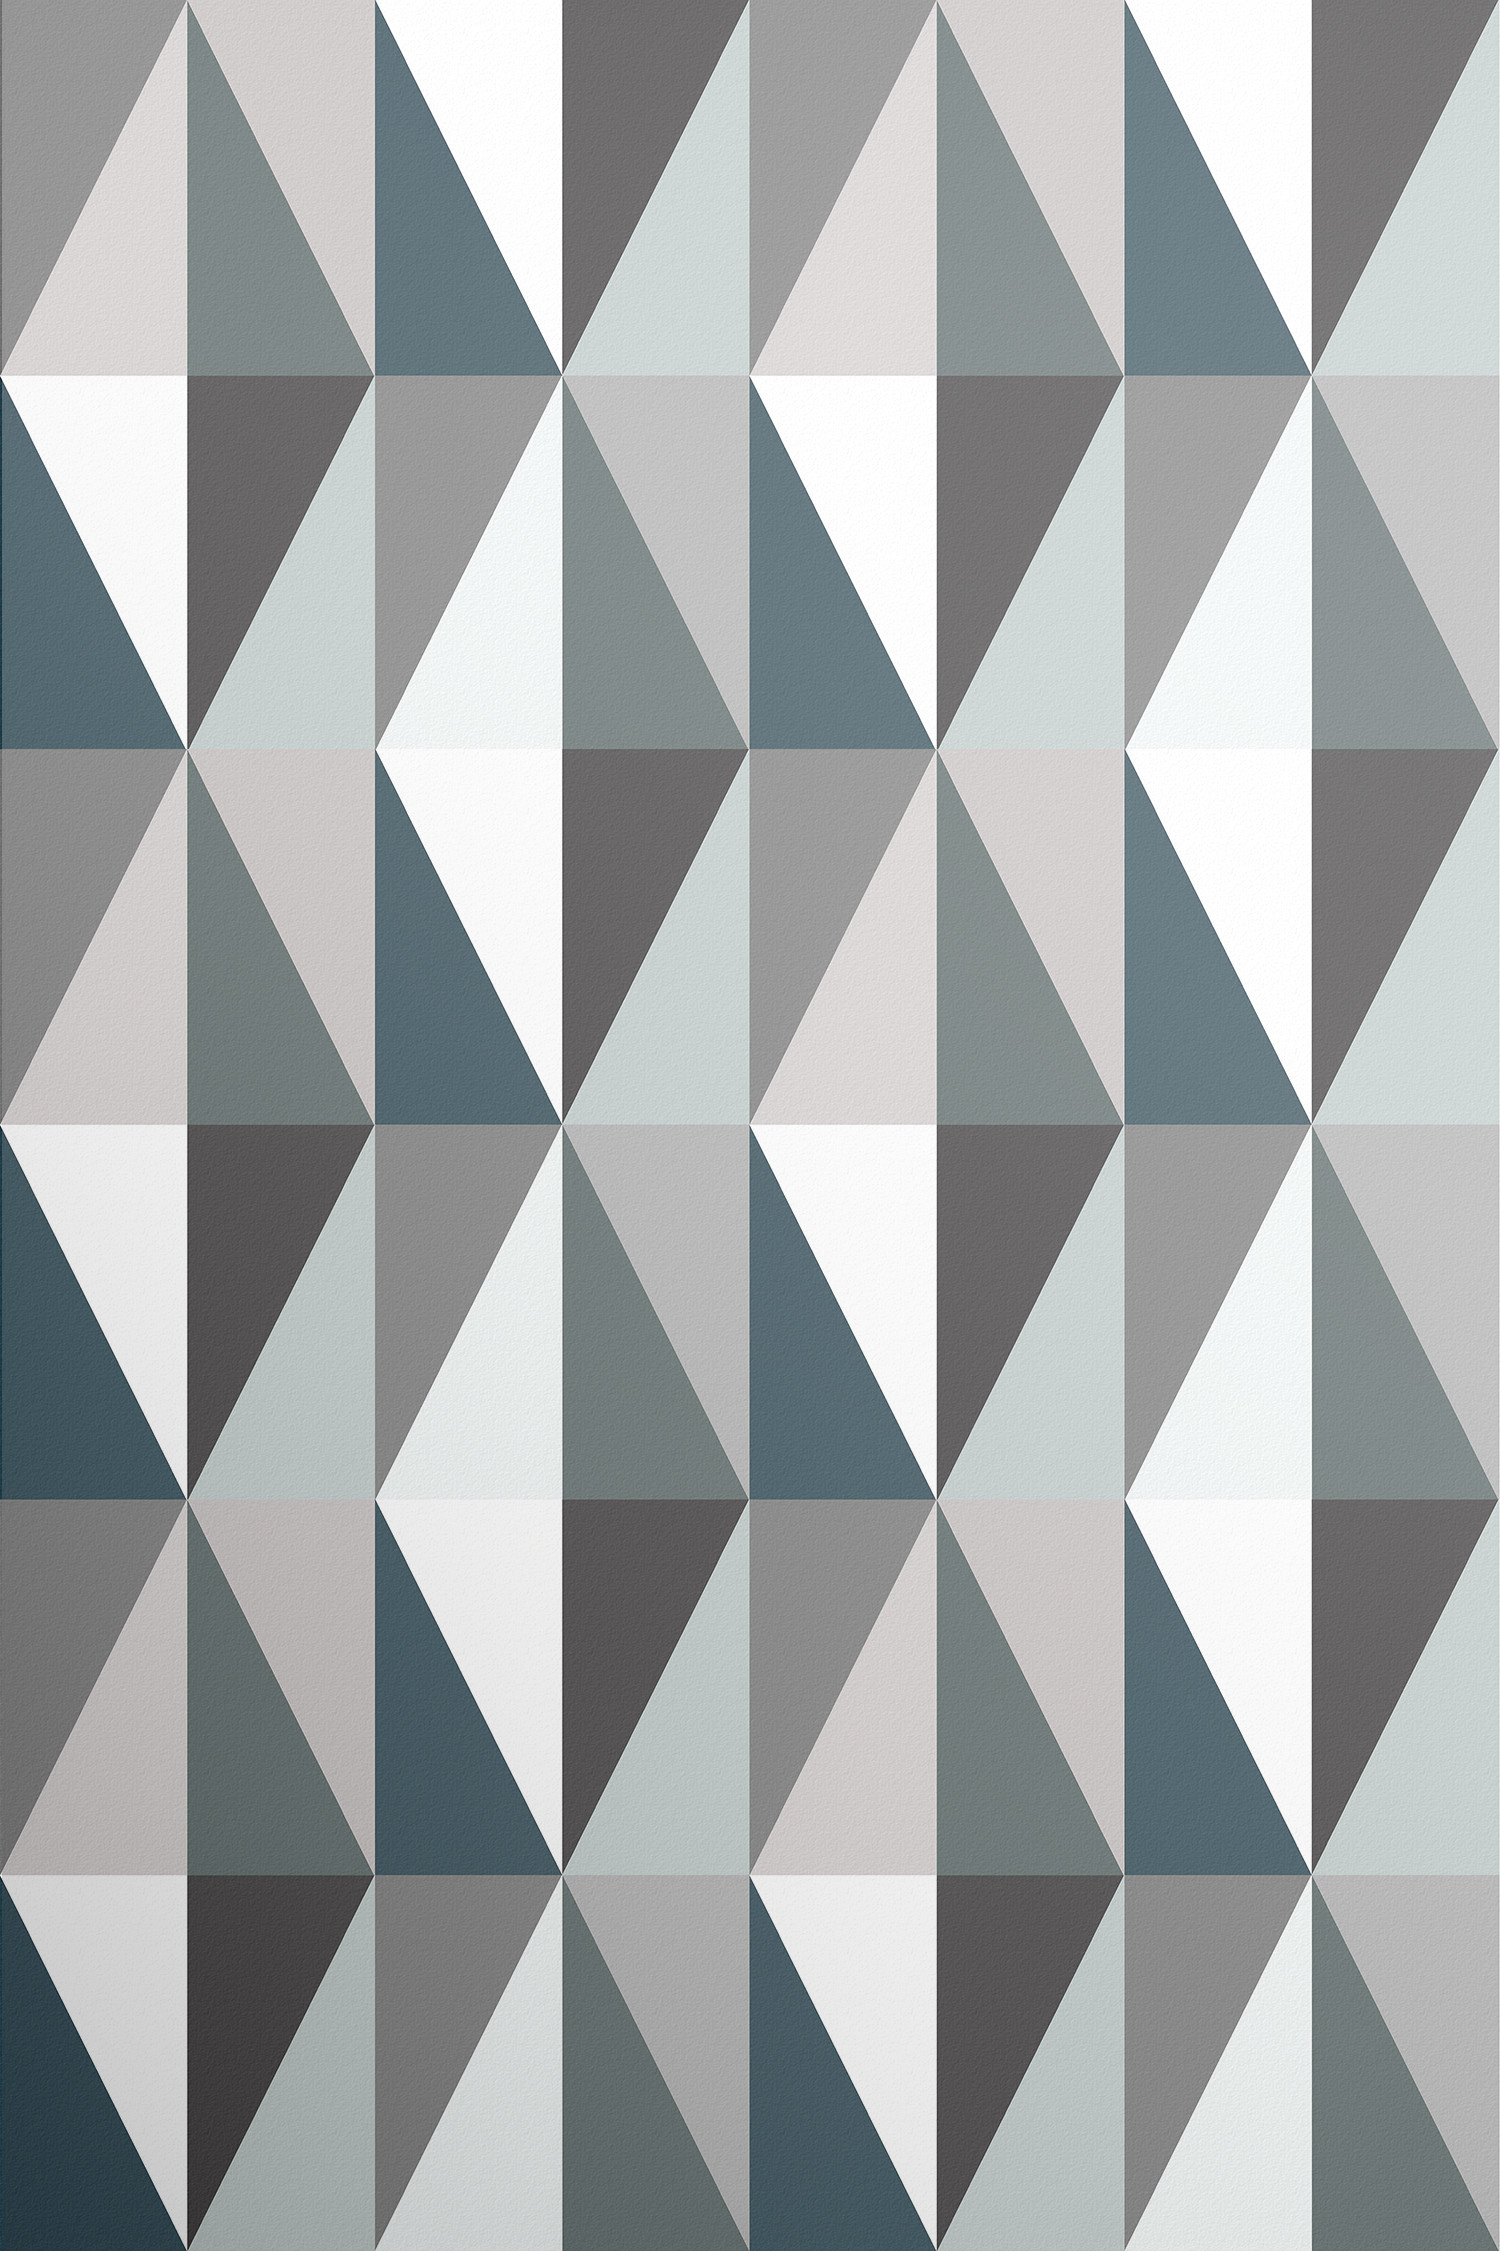 London Underground style tiles of triangles in rich emerald, blue, grey and  white make